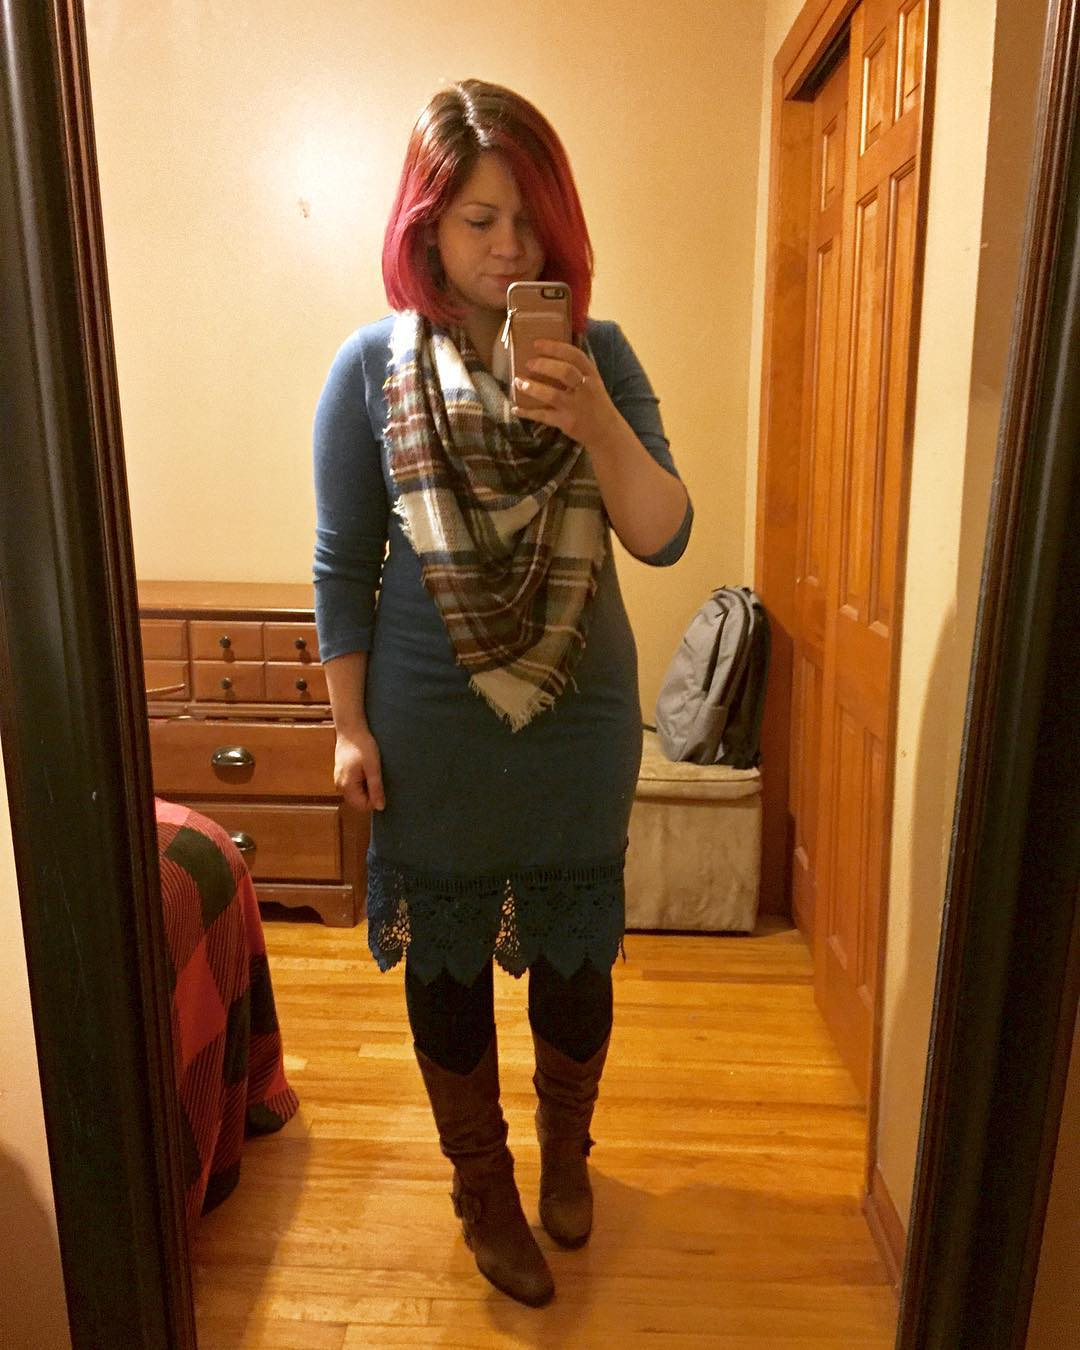 OOTD…and now it's nap time